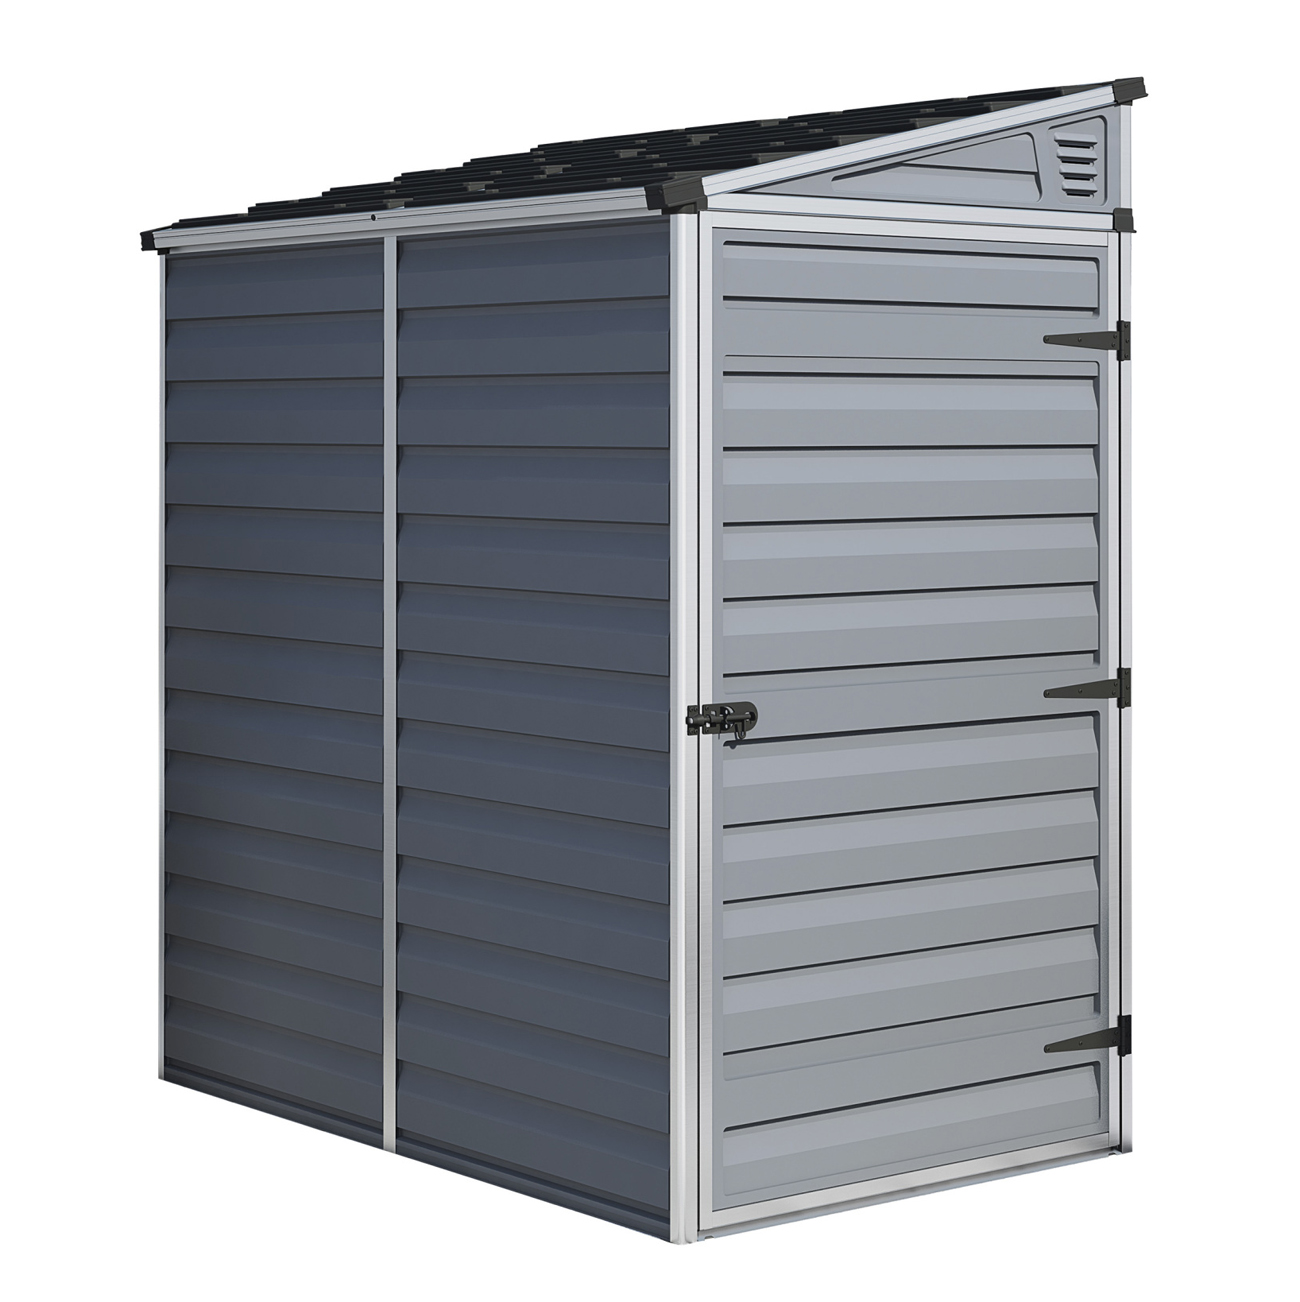 SkyLight 4' x 6' Lean-To Storage Shed - Gray